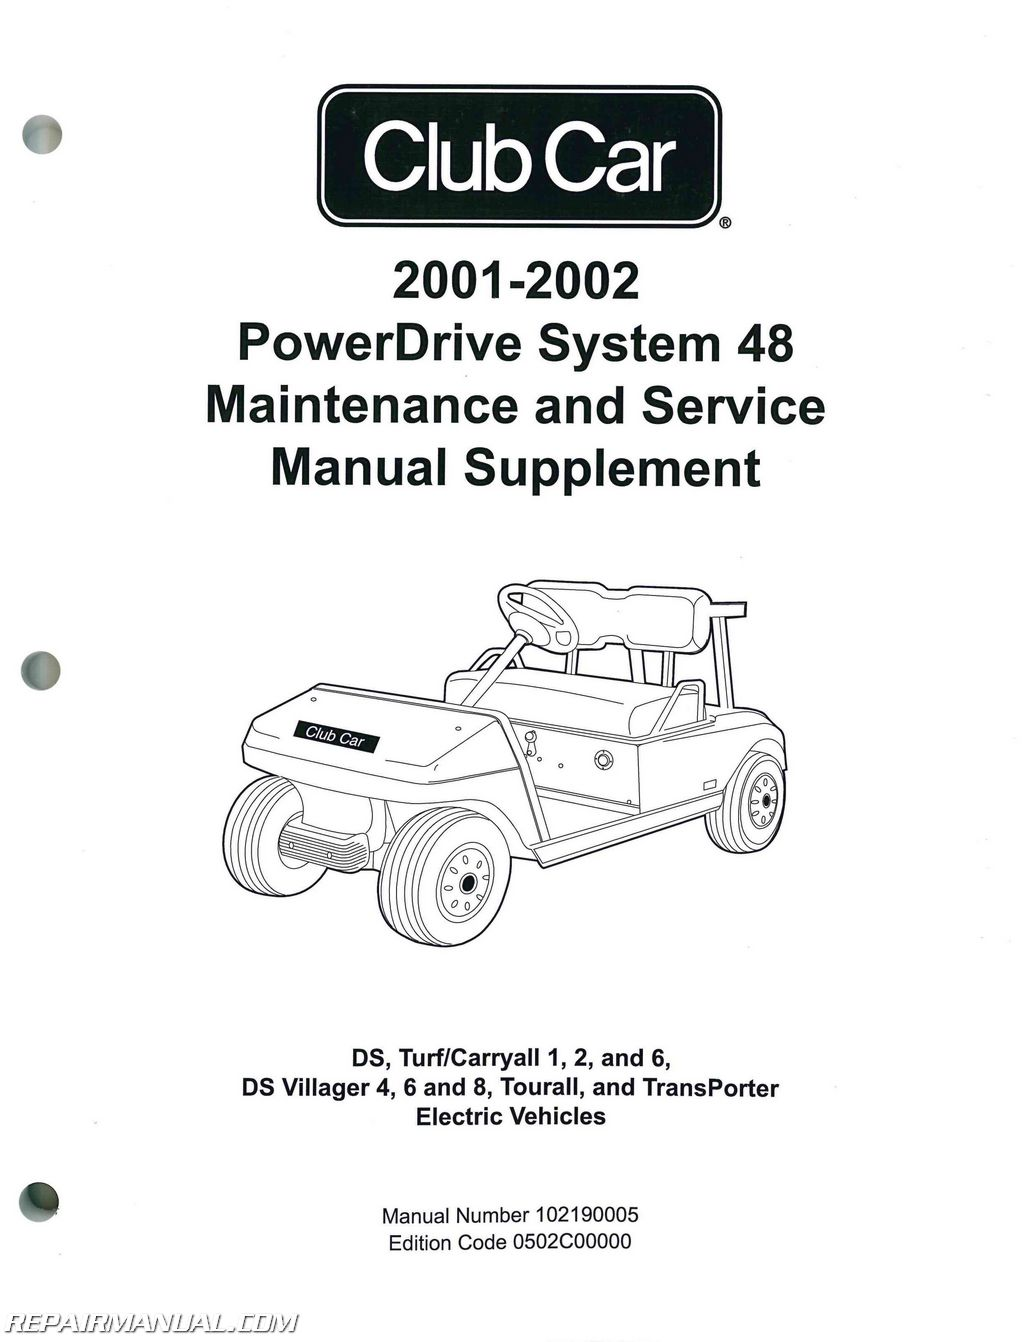 Club Car Powerdrive System 48 Maintenance And